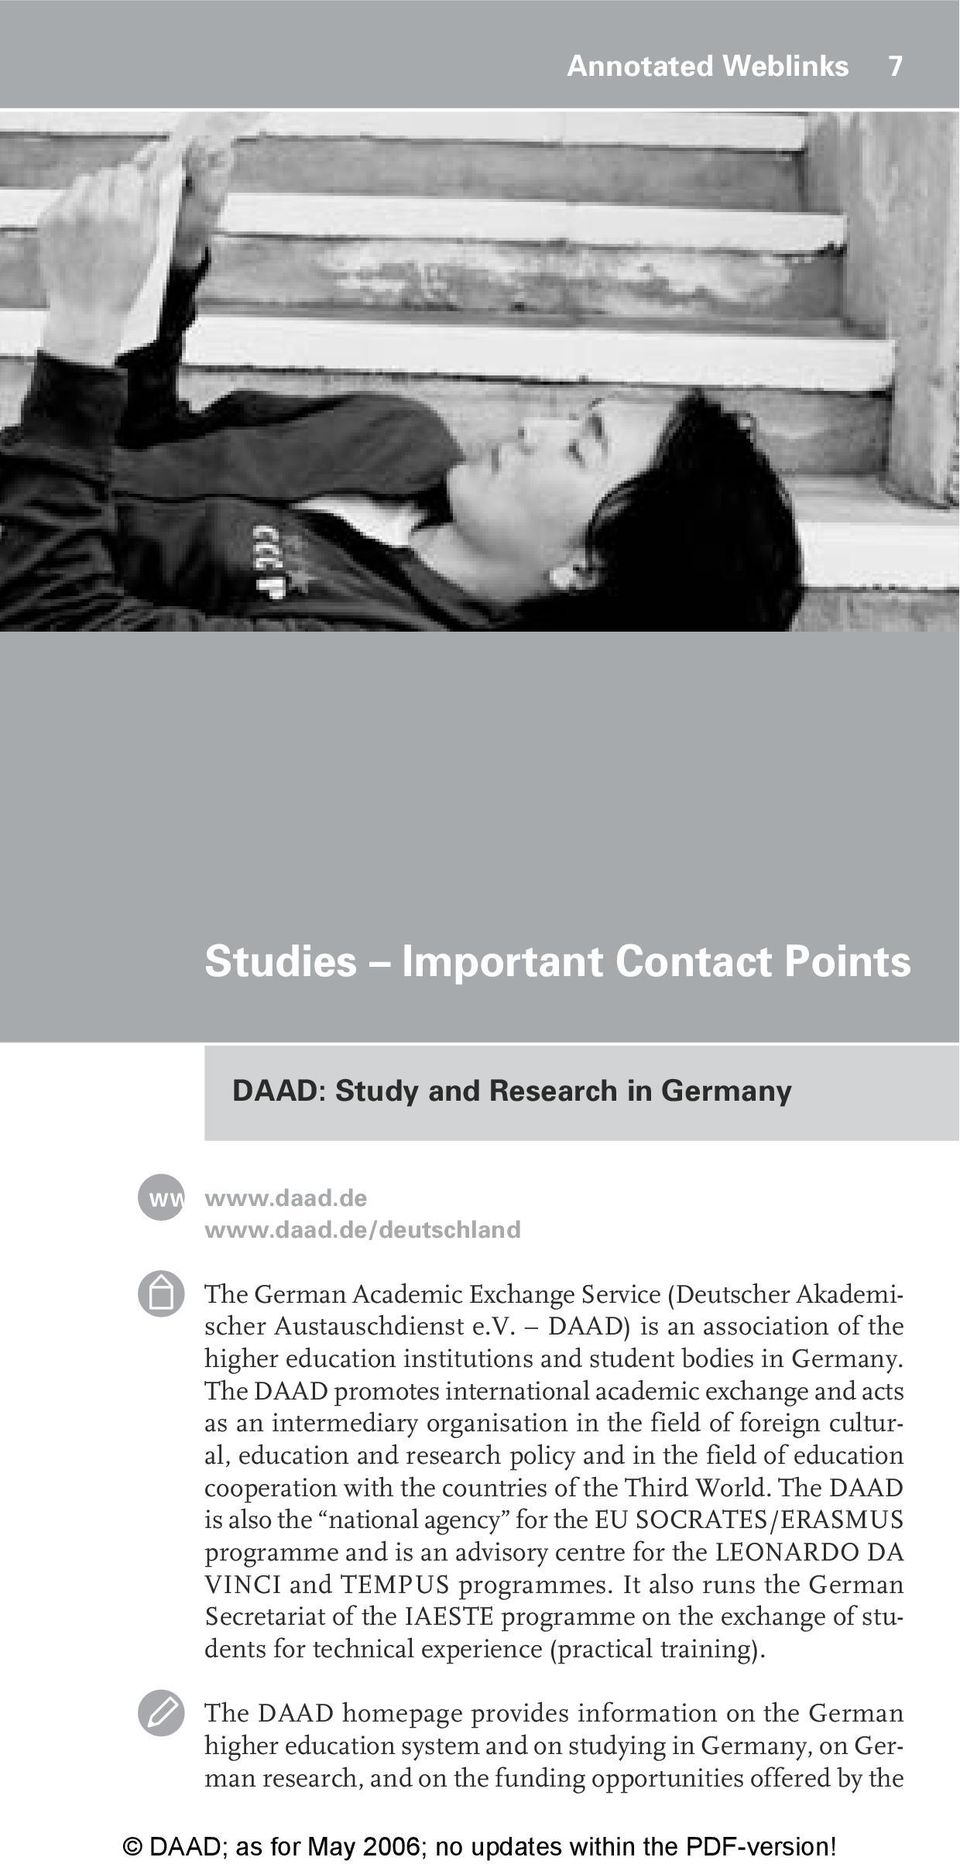 The DAAD promotes international academic exchange and acts as an intermediary organisation in the field of foreign cultural, education and research policy and in the field of education cooperation